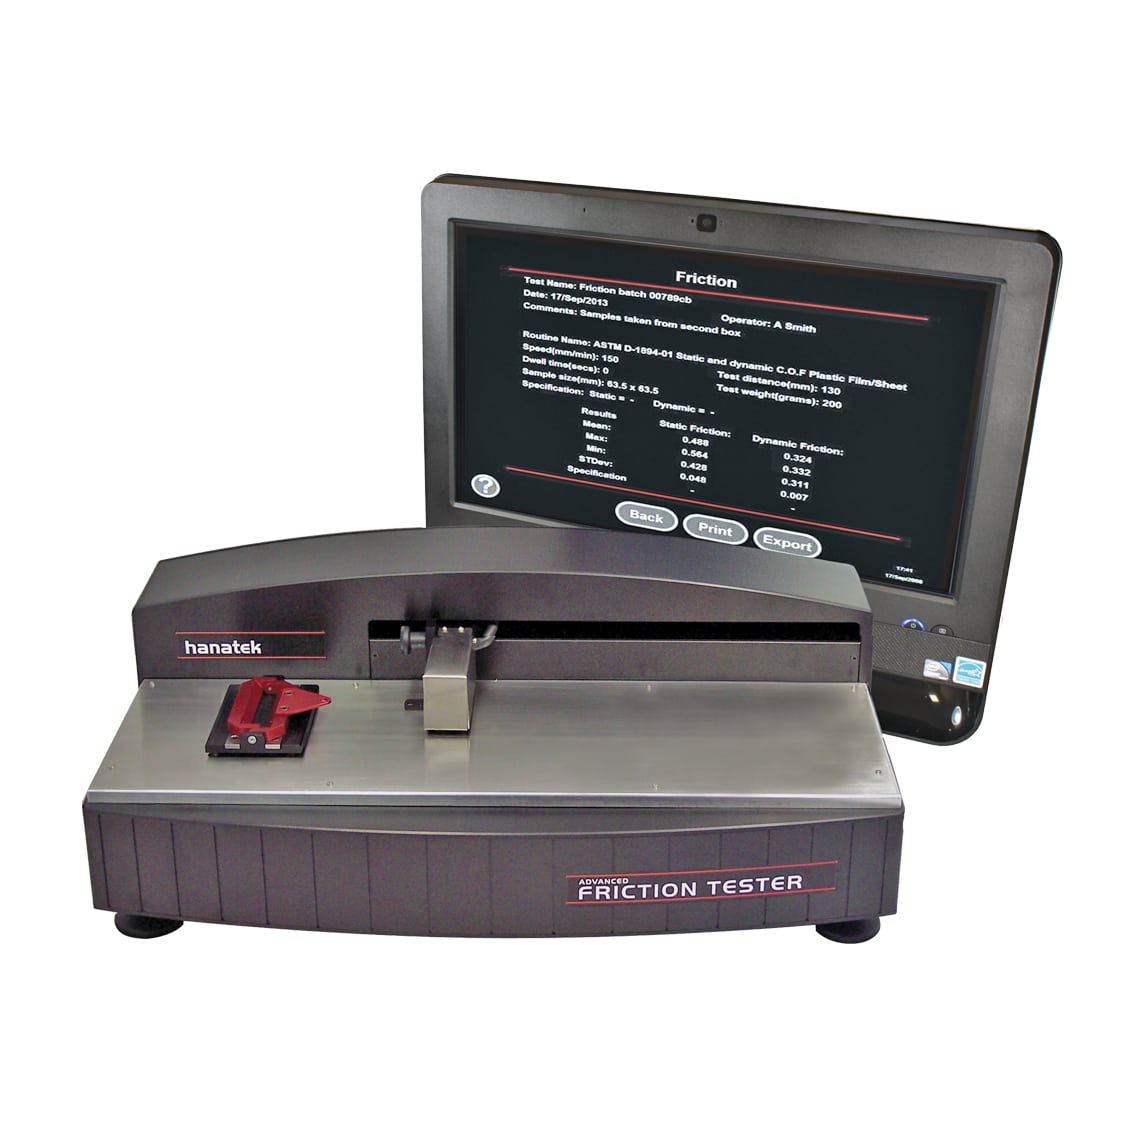 Hanatek AFT Advanced Friction Tester